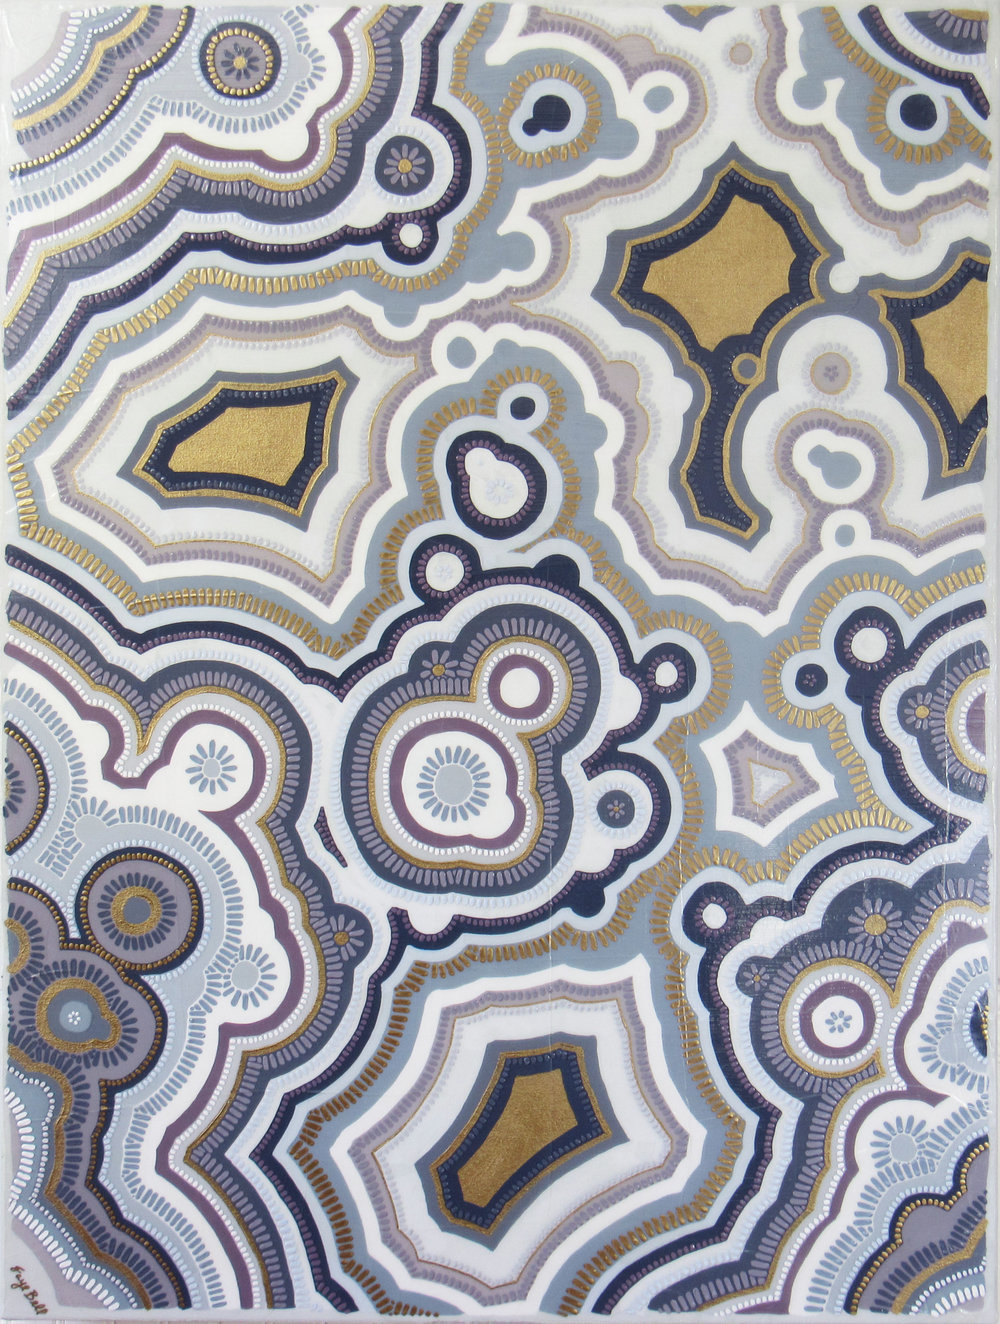 Agate 10 , 2018, 30x40, acrylic on canvas. sold.